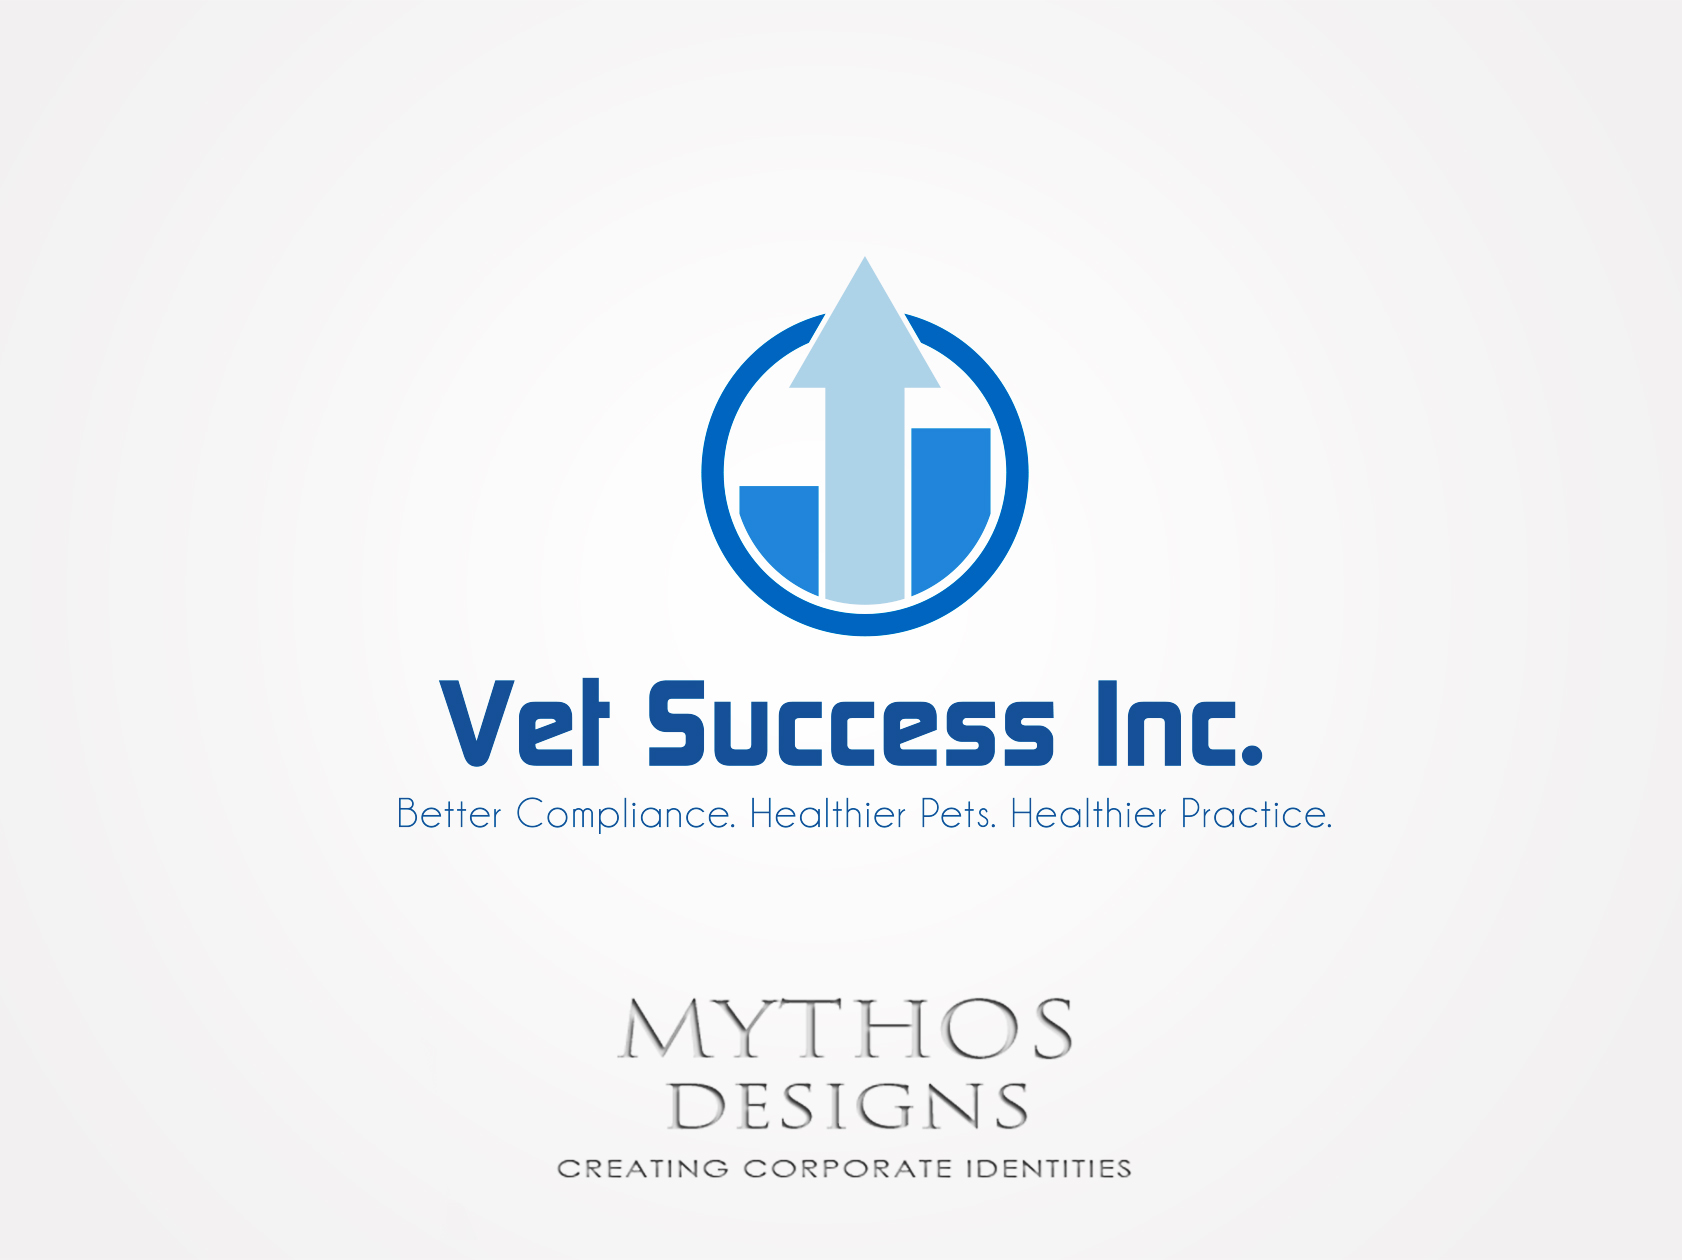 Logo Design by Mythos Designs - Entry No. 62 in the Logo Design Contest Imaginative Logo Design for Vet Success Inc..